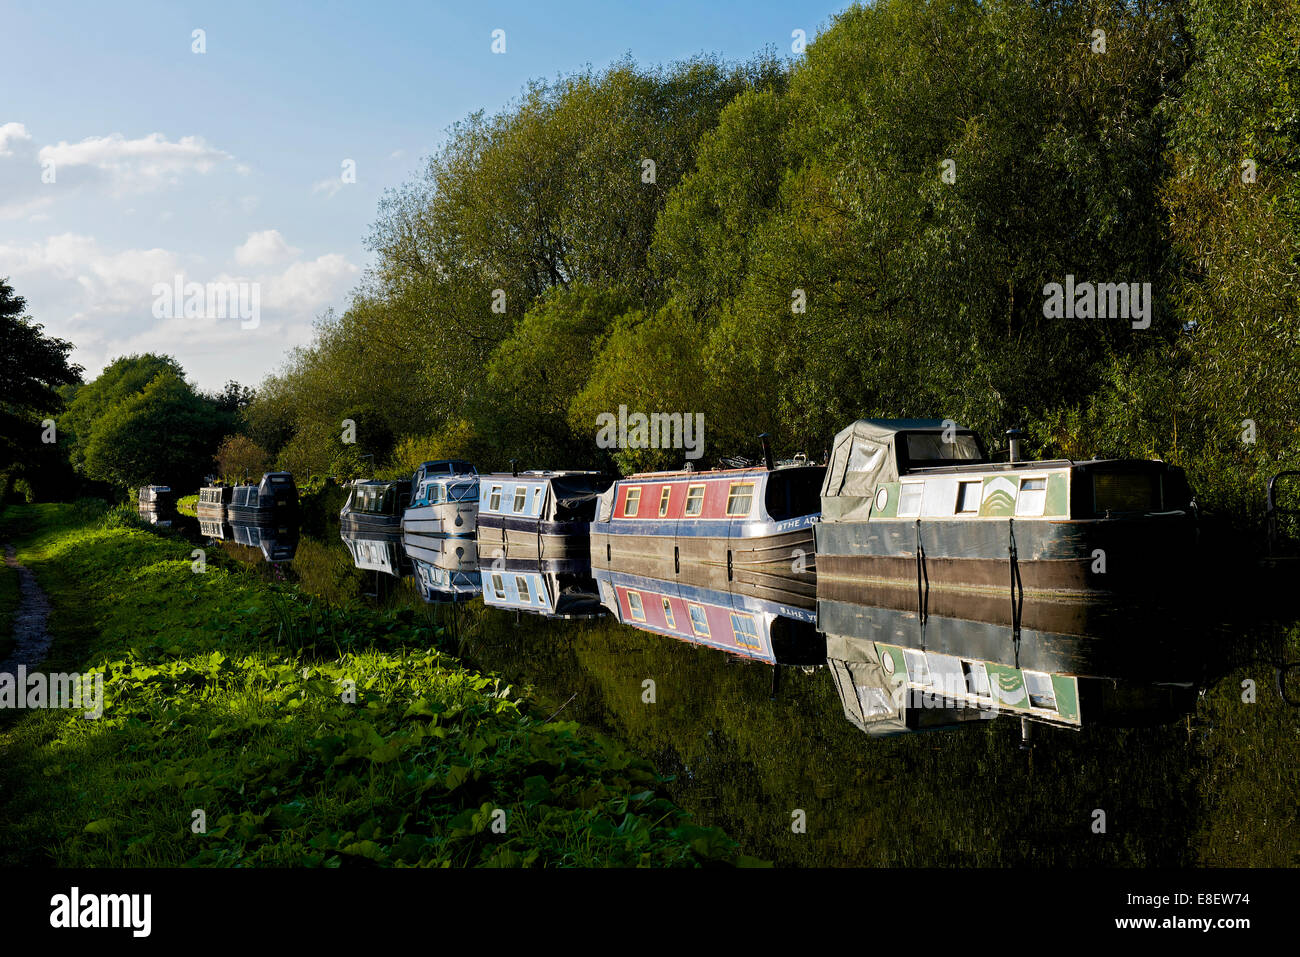 Narrowboats on the Trent and Mersey Canal at Great Haywood, Staffordshire, England UK - Stock Image